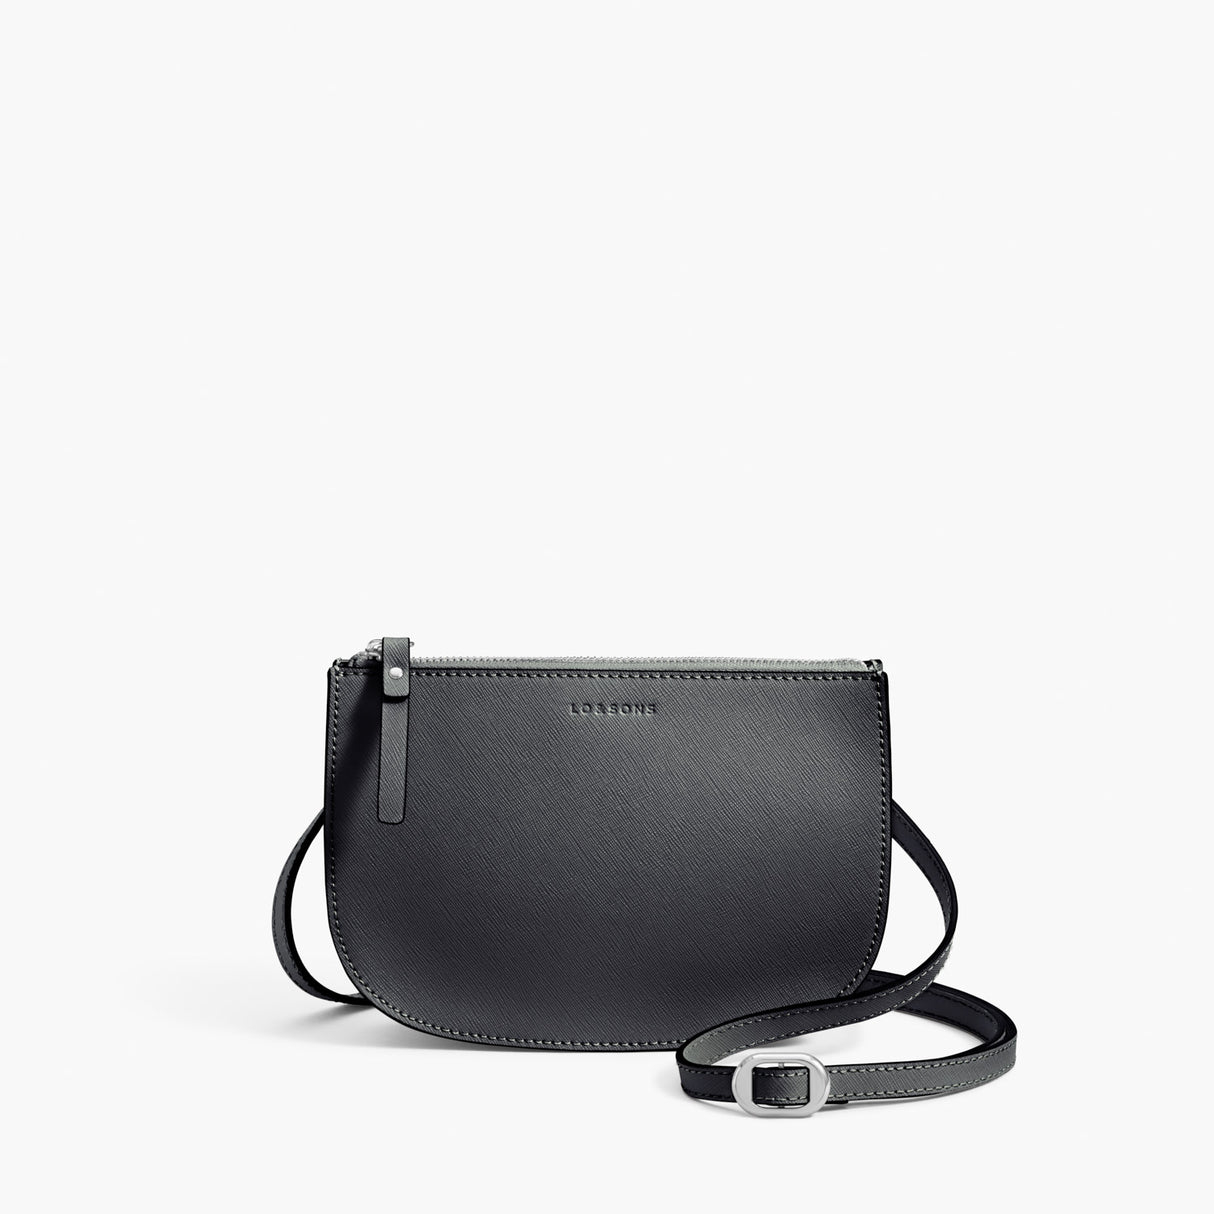 Front Crossbody - Waverley 2 - Saffiano Leather - Dark Grey / Silver / Azure - Crossbody Bag - Lo & Sons